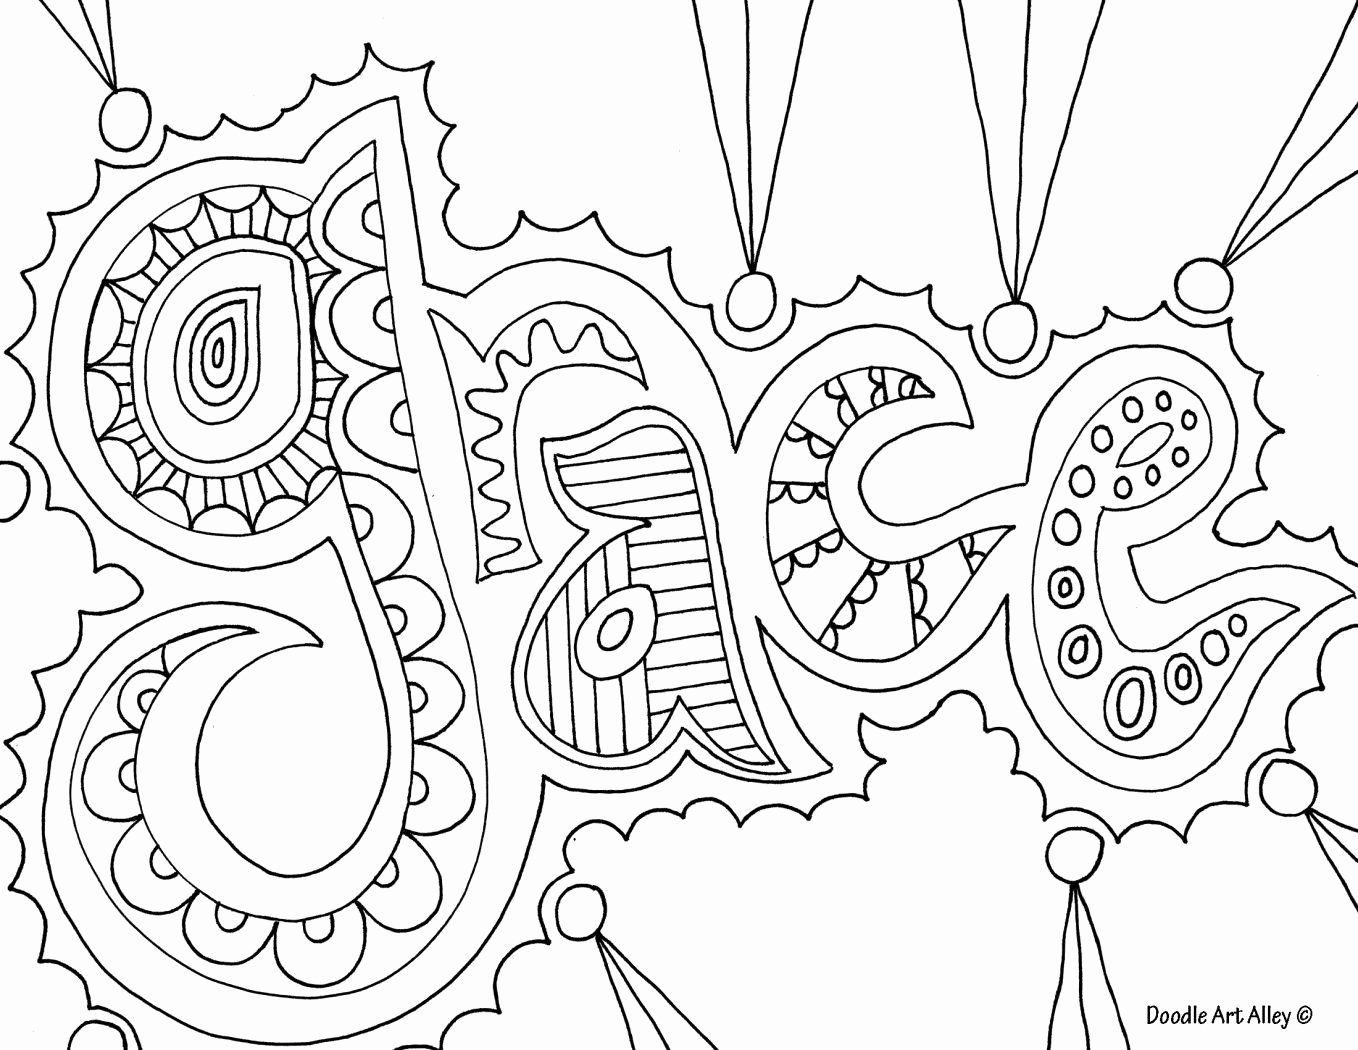 Pin On Coloring Page Books For Kids And Adult